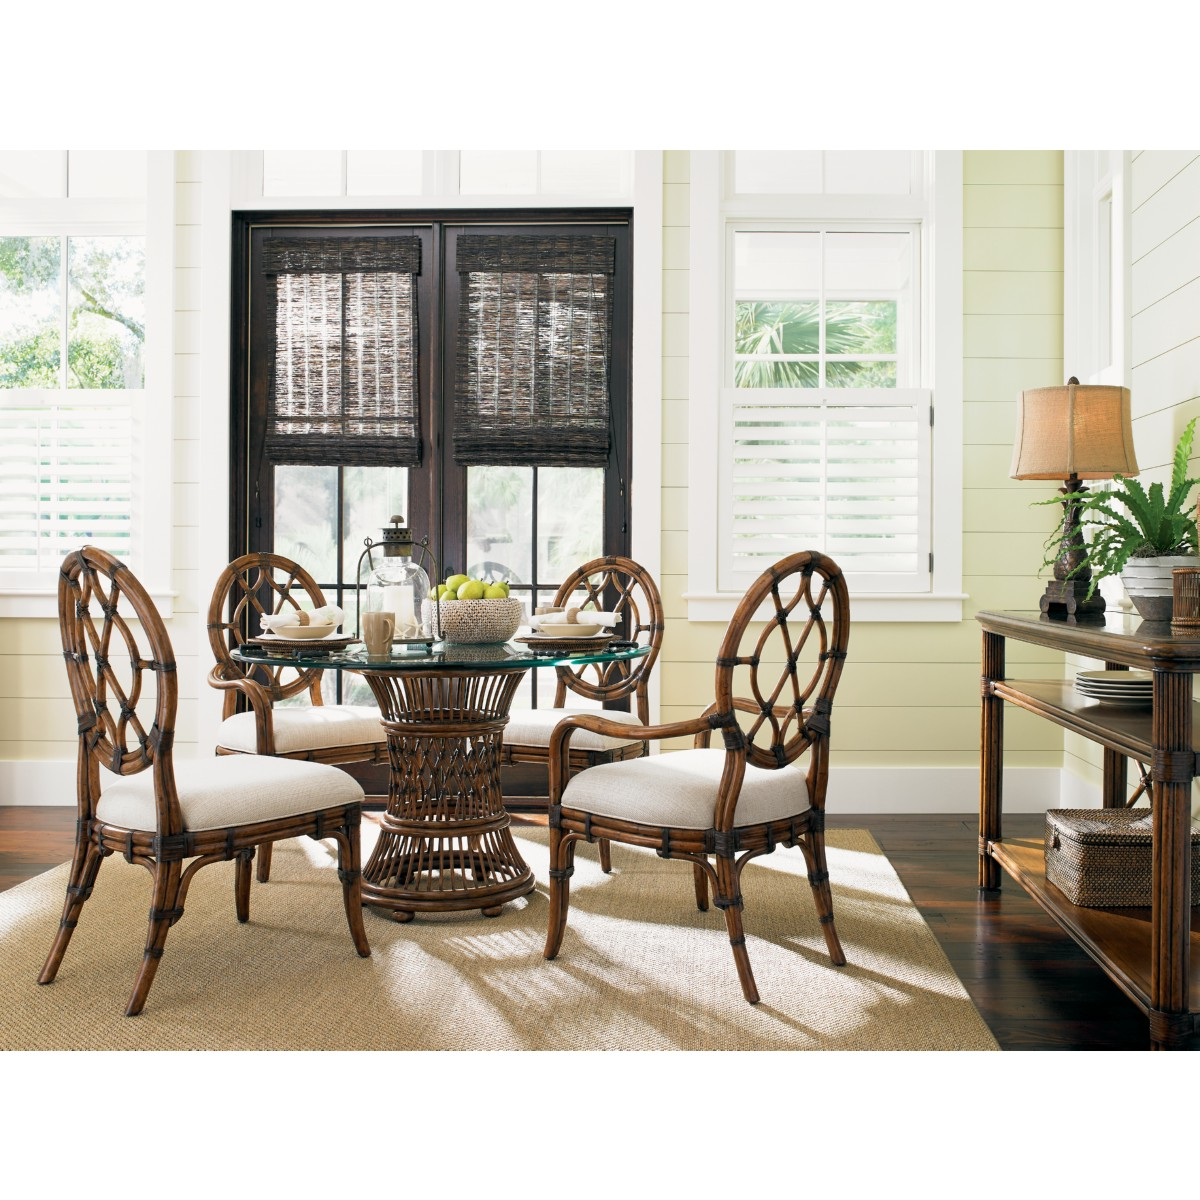 Aruba 36  Dining Table w  Leather Wrapped Rattan Base   Glass Top. Tommy Bahama Home 593 870 001 036GT Aruba 36  Dining Table w